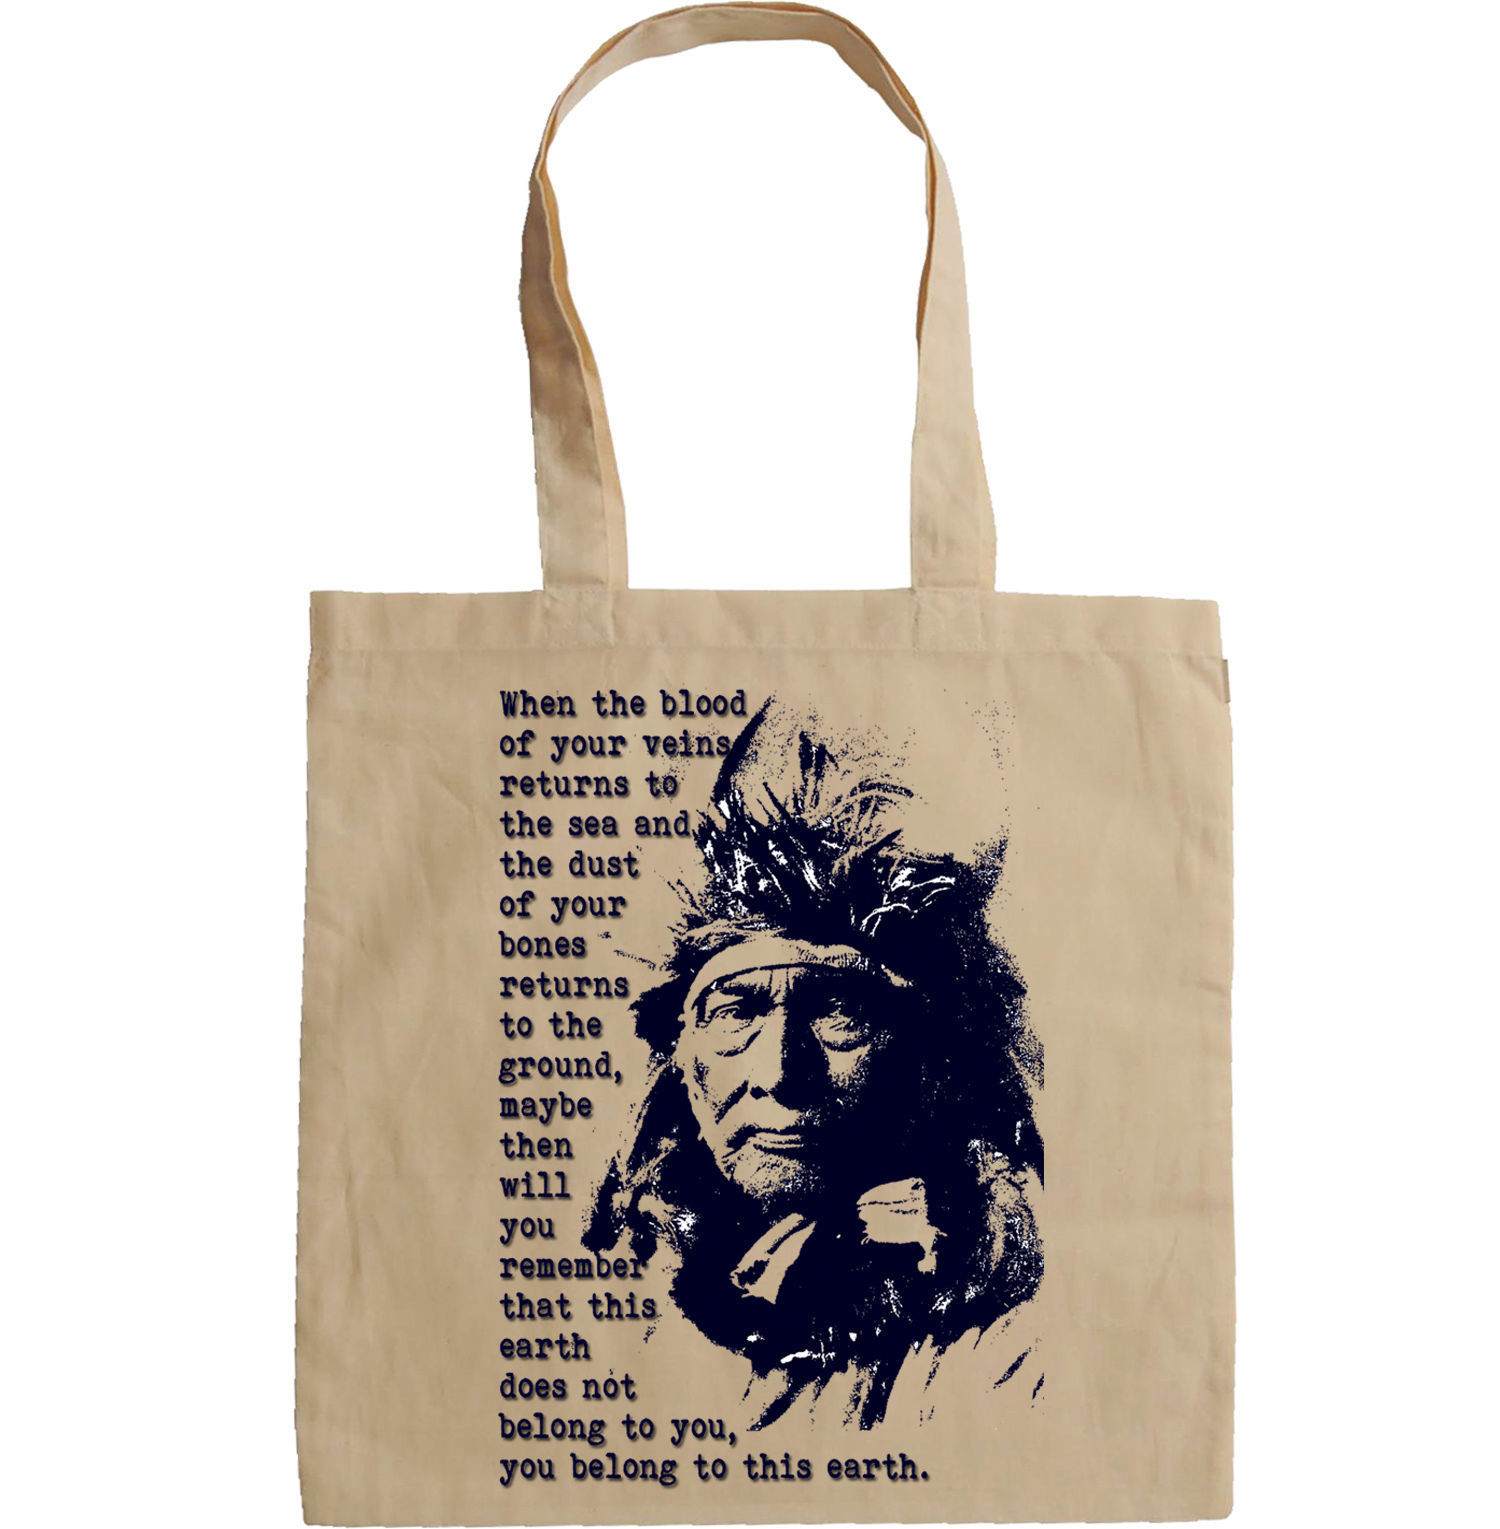 NATIVE AMERICAN INDIAN QUOTE - NEW AMAZING GRAPHIC HAND BAG/TOTE BAG